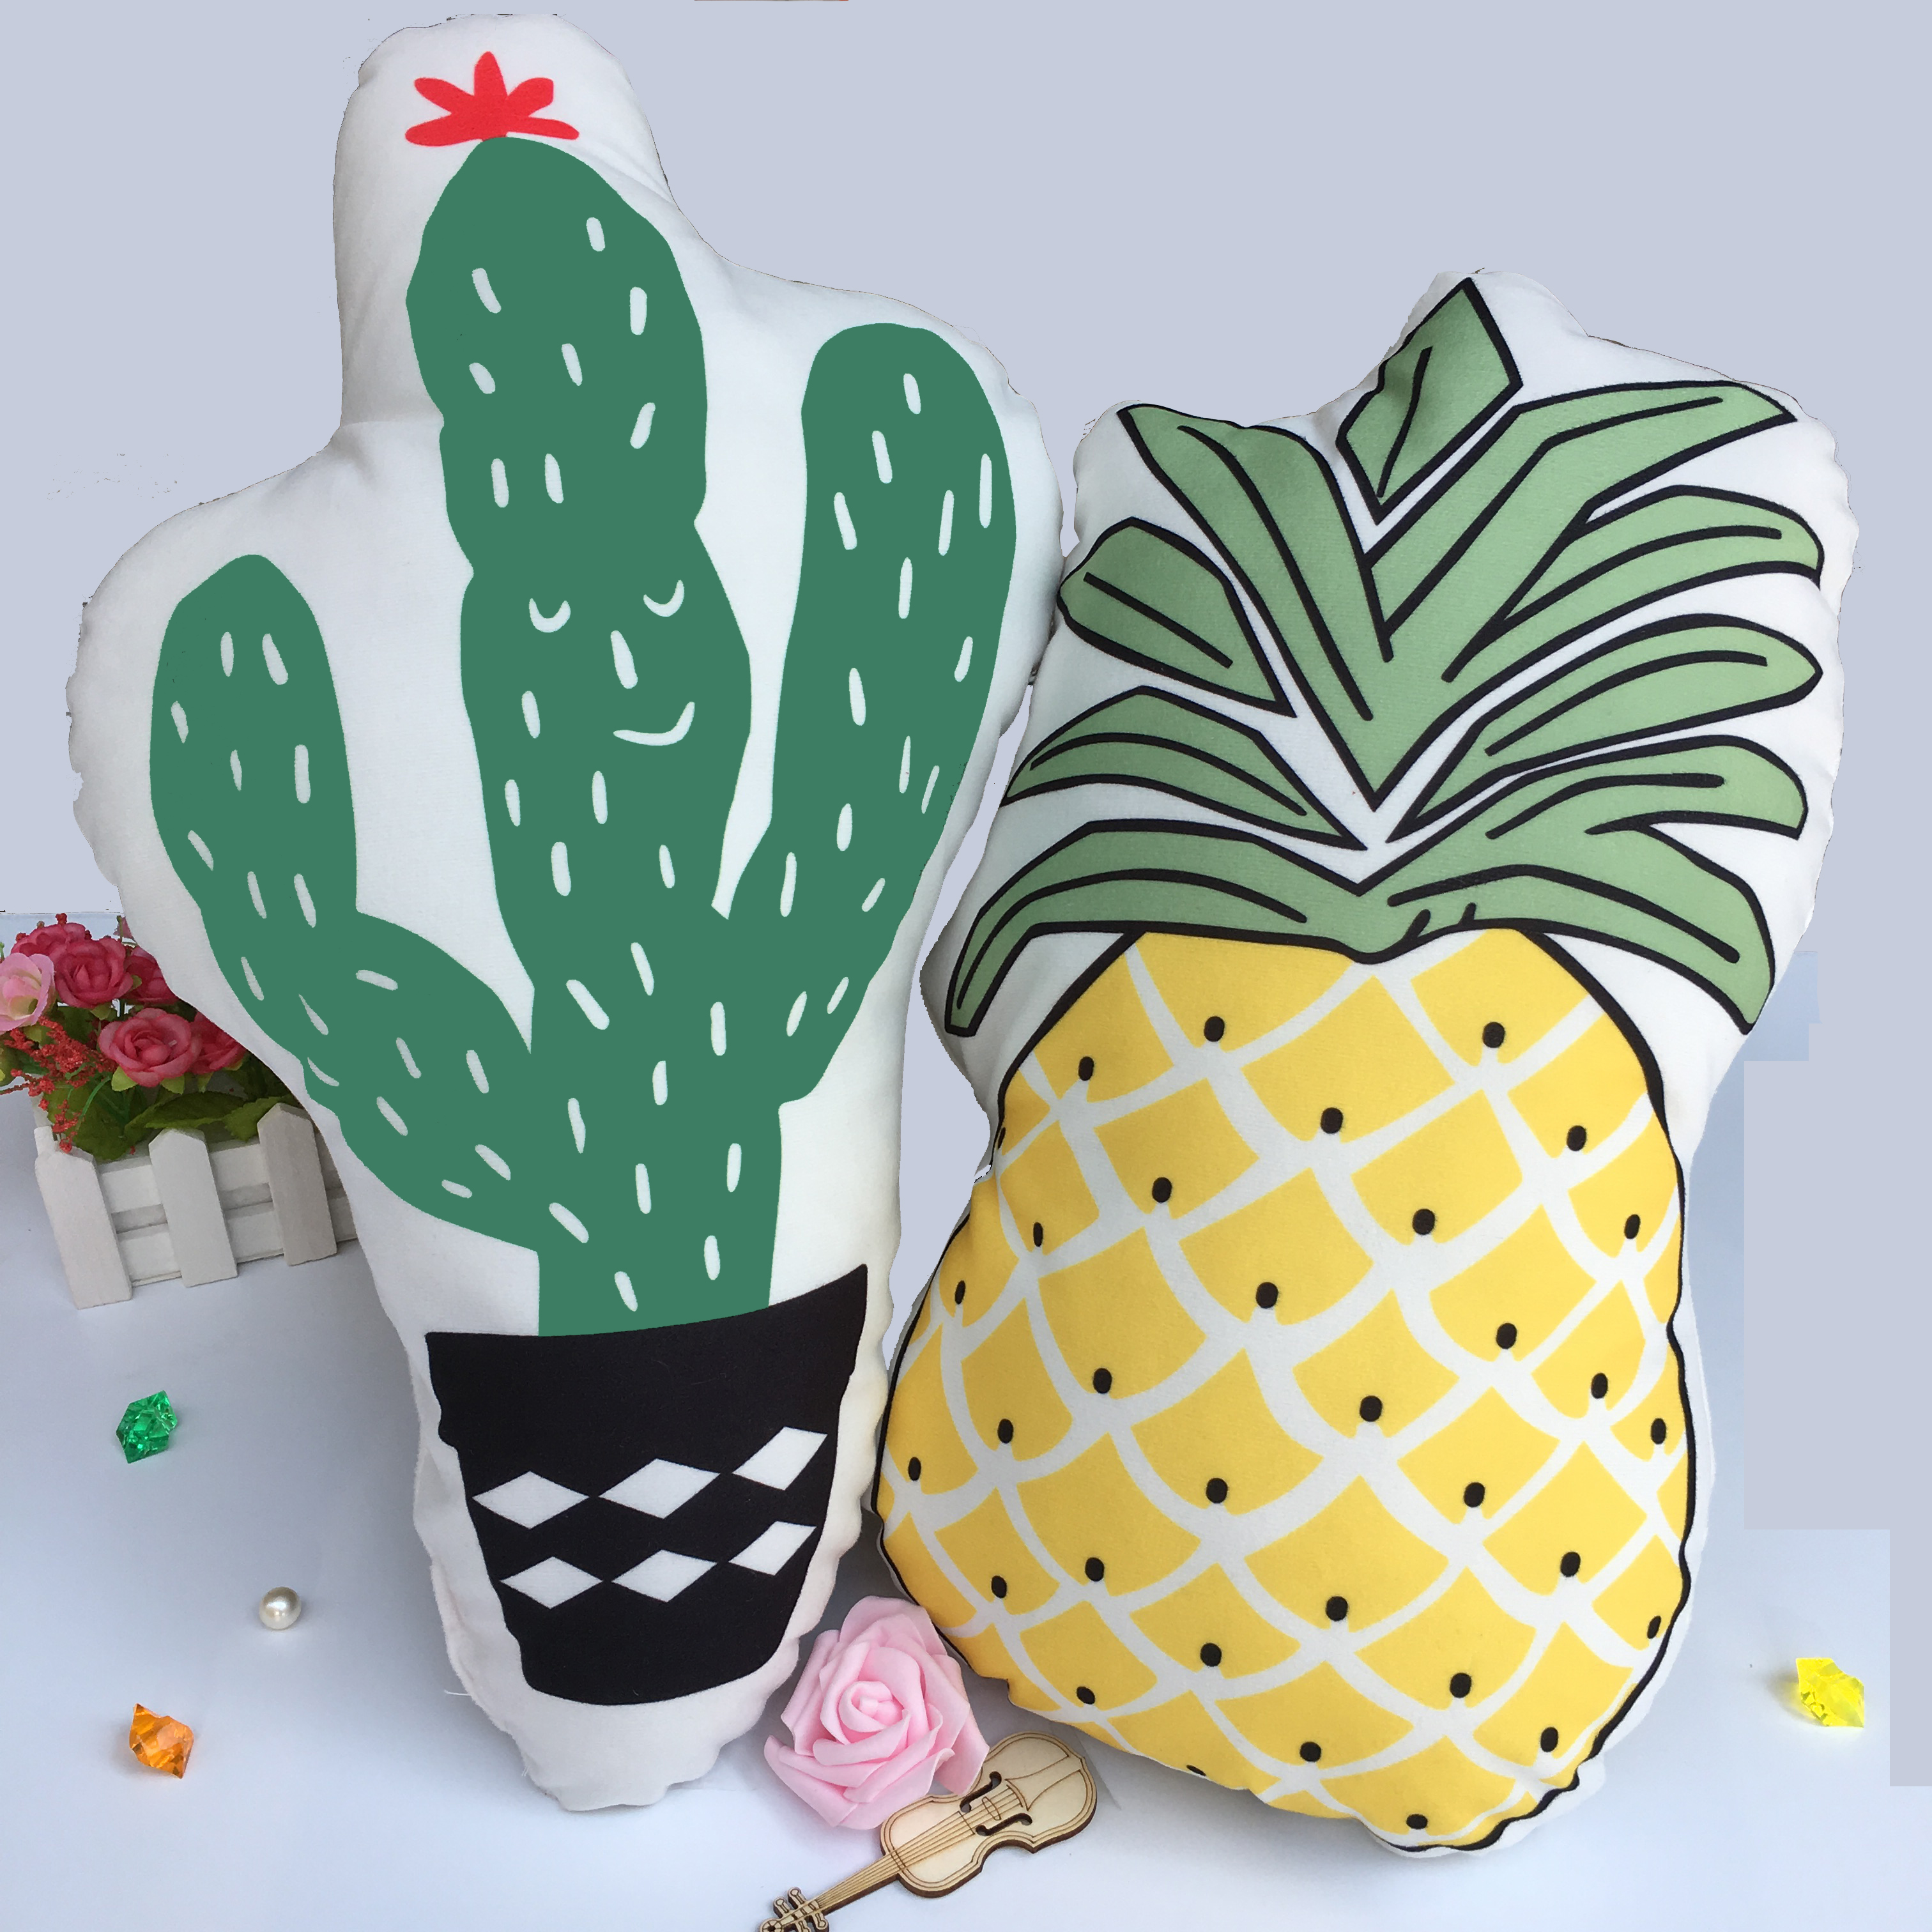 Cute Cactus/pineapple Soft Appease Baby Pillow Home Decor Baby's Room Bedroom/Sofa Cushions Photography Props Bedding Stuffed